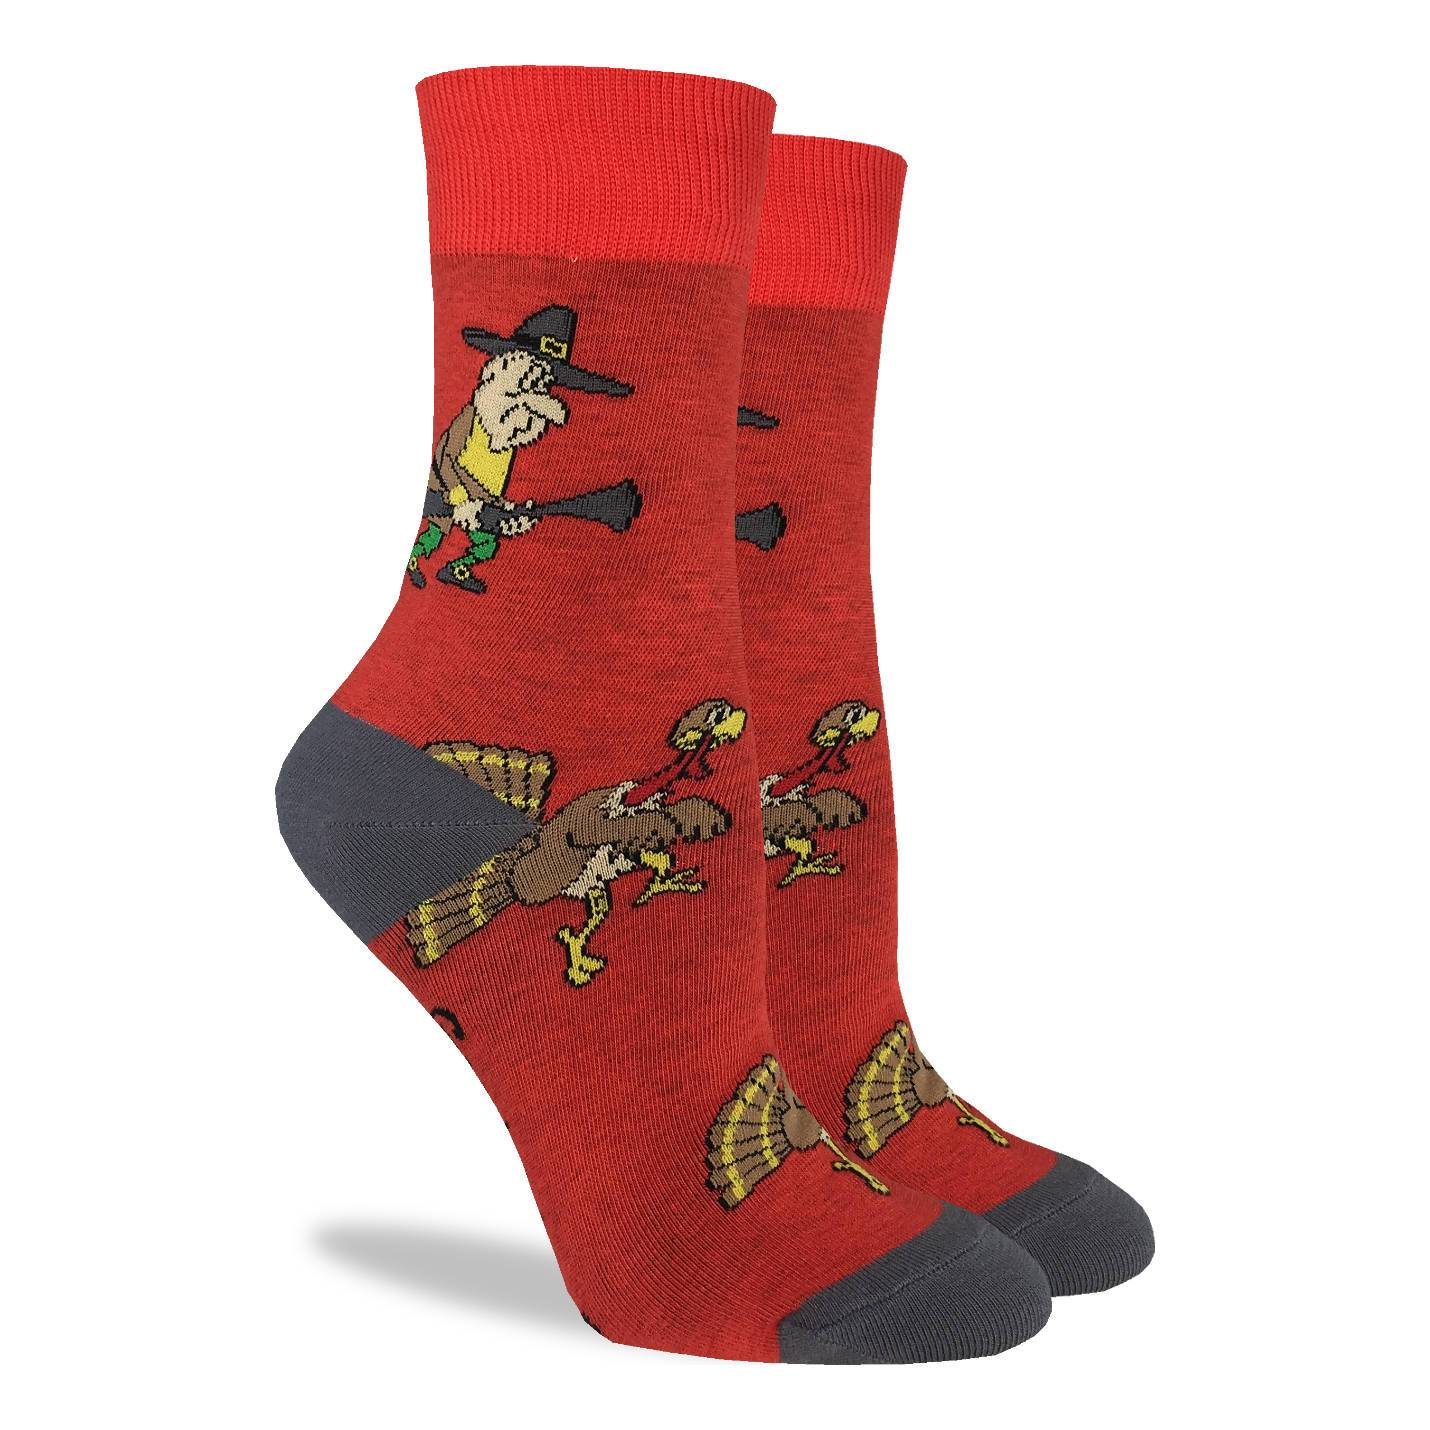 Women's Turkey Hunt Socks - Good Luck Sock